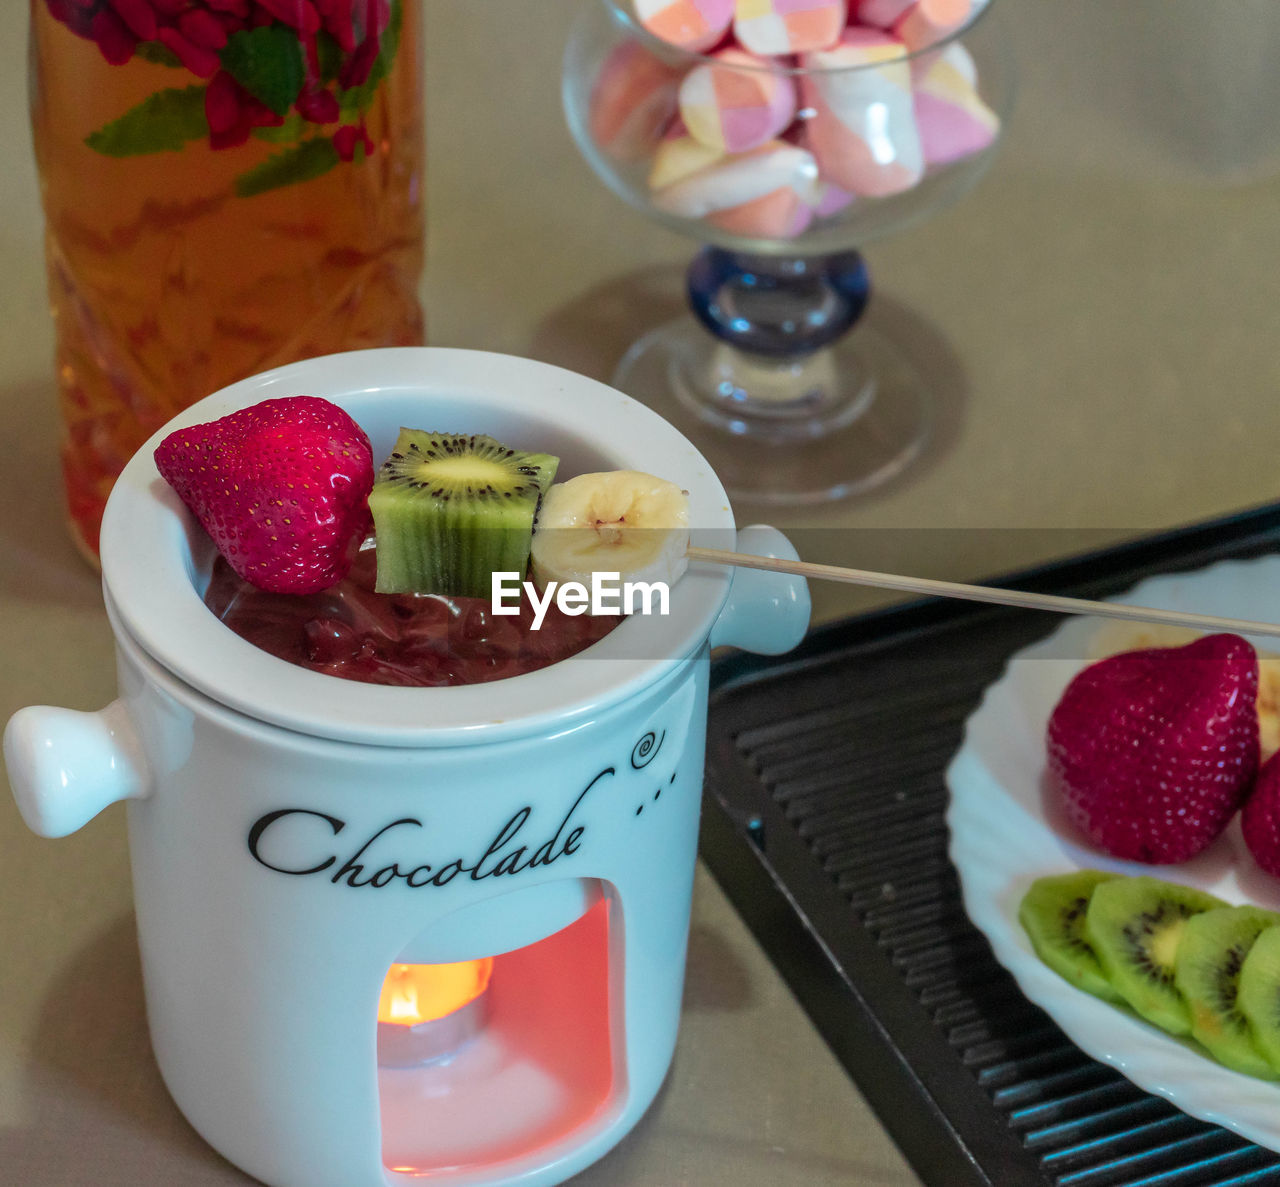 CLOSE-UP OF ICE CREAM WITH FRUITS AND TABLE